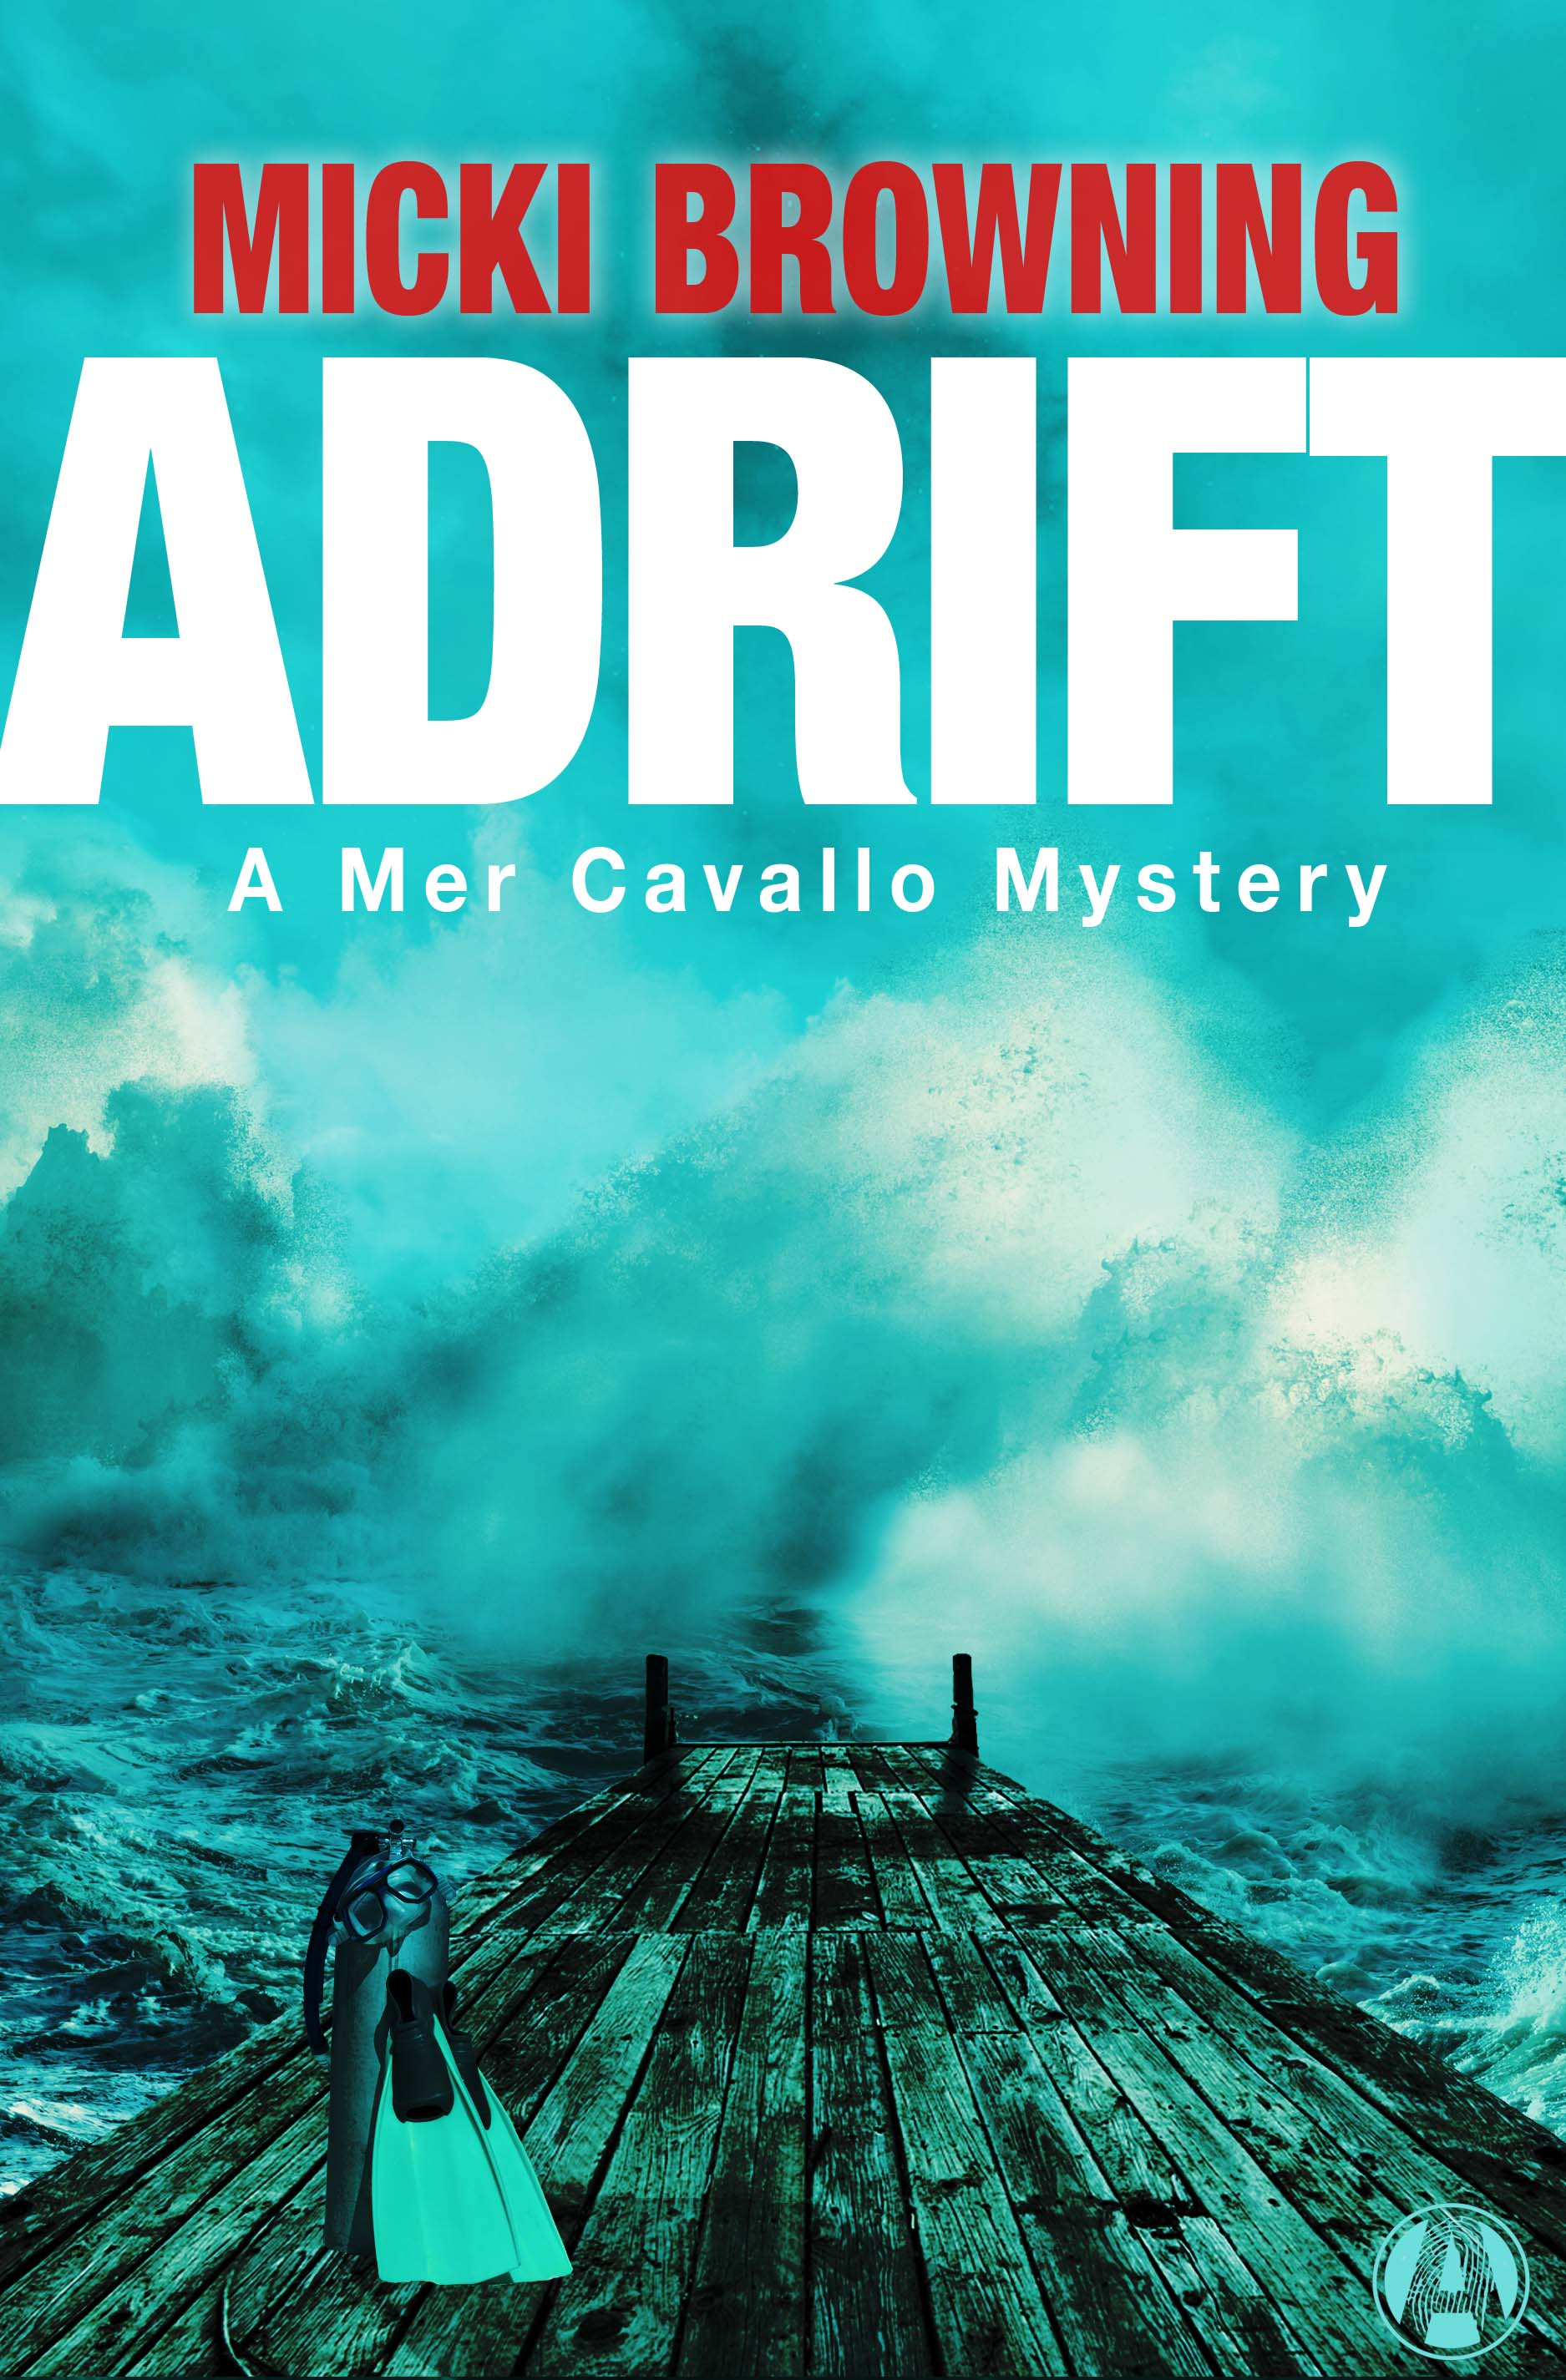 Book cover for Adrift by Micki Browning